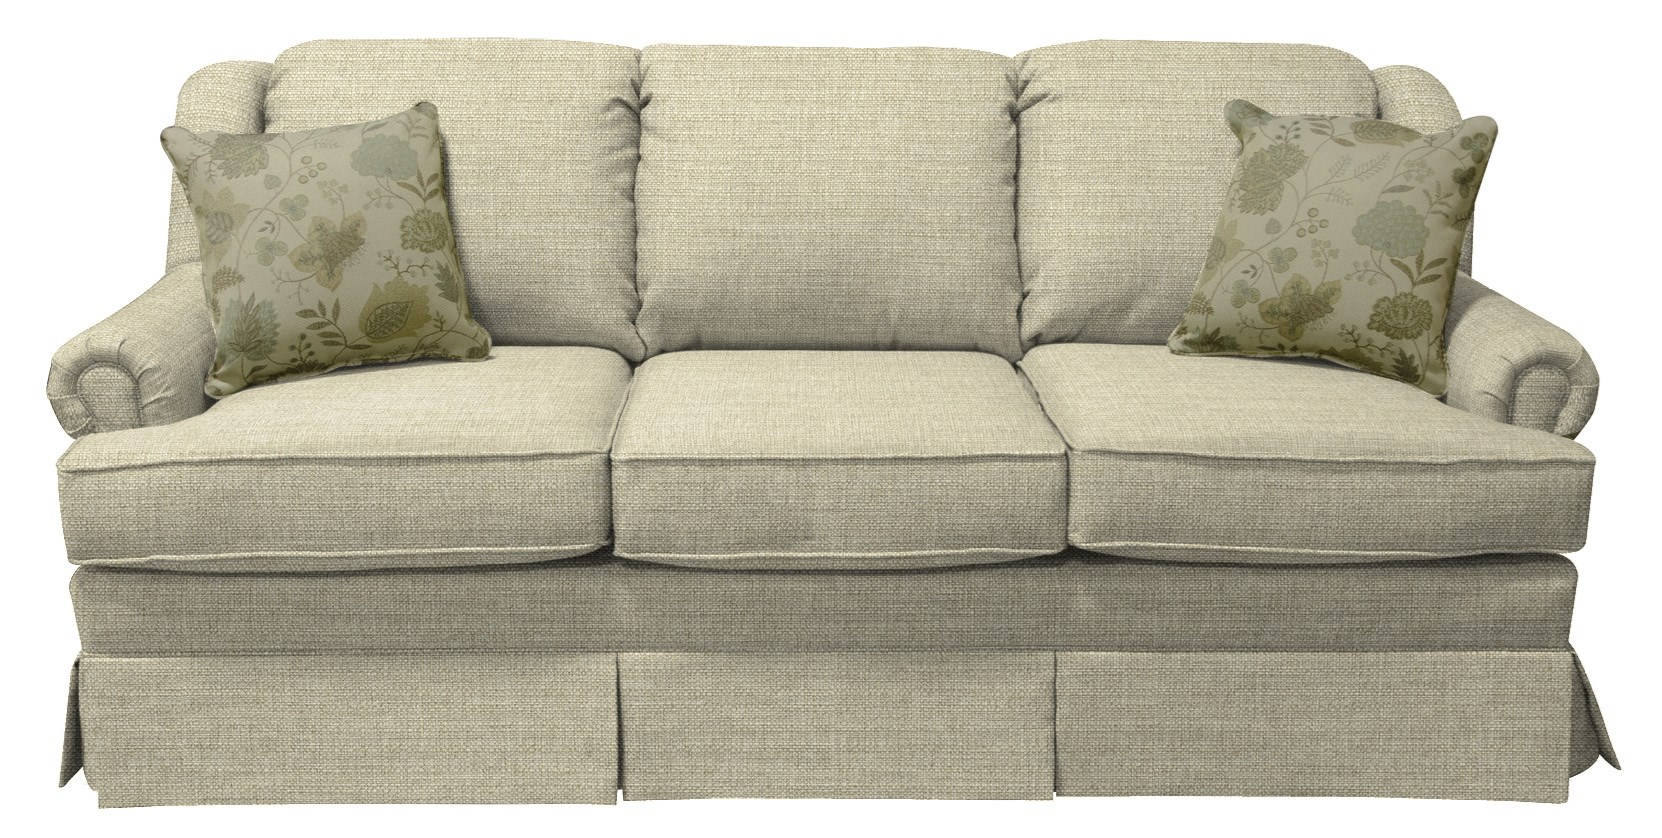 Rochelle Sofa by England at Crowley Furniture & Mattress